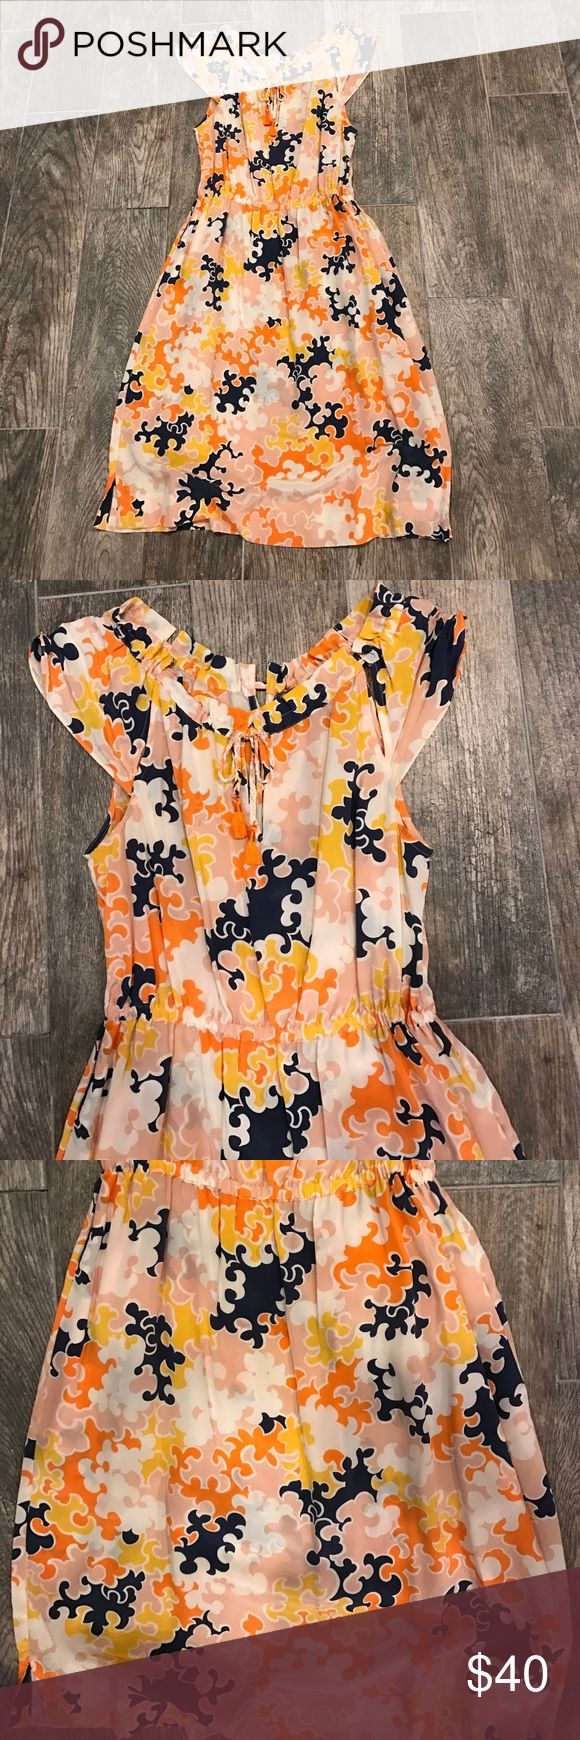 Vanessa Virginia Puzzles Pieces Dress Great Condition! 100% silk! Great condition. Anthropologie Dresses Midi